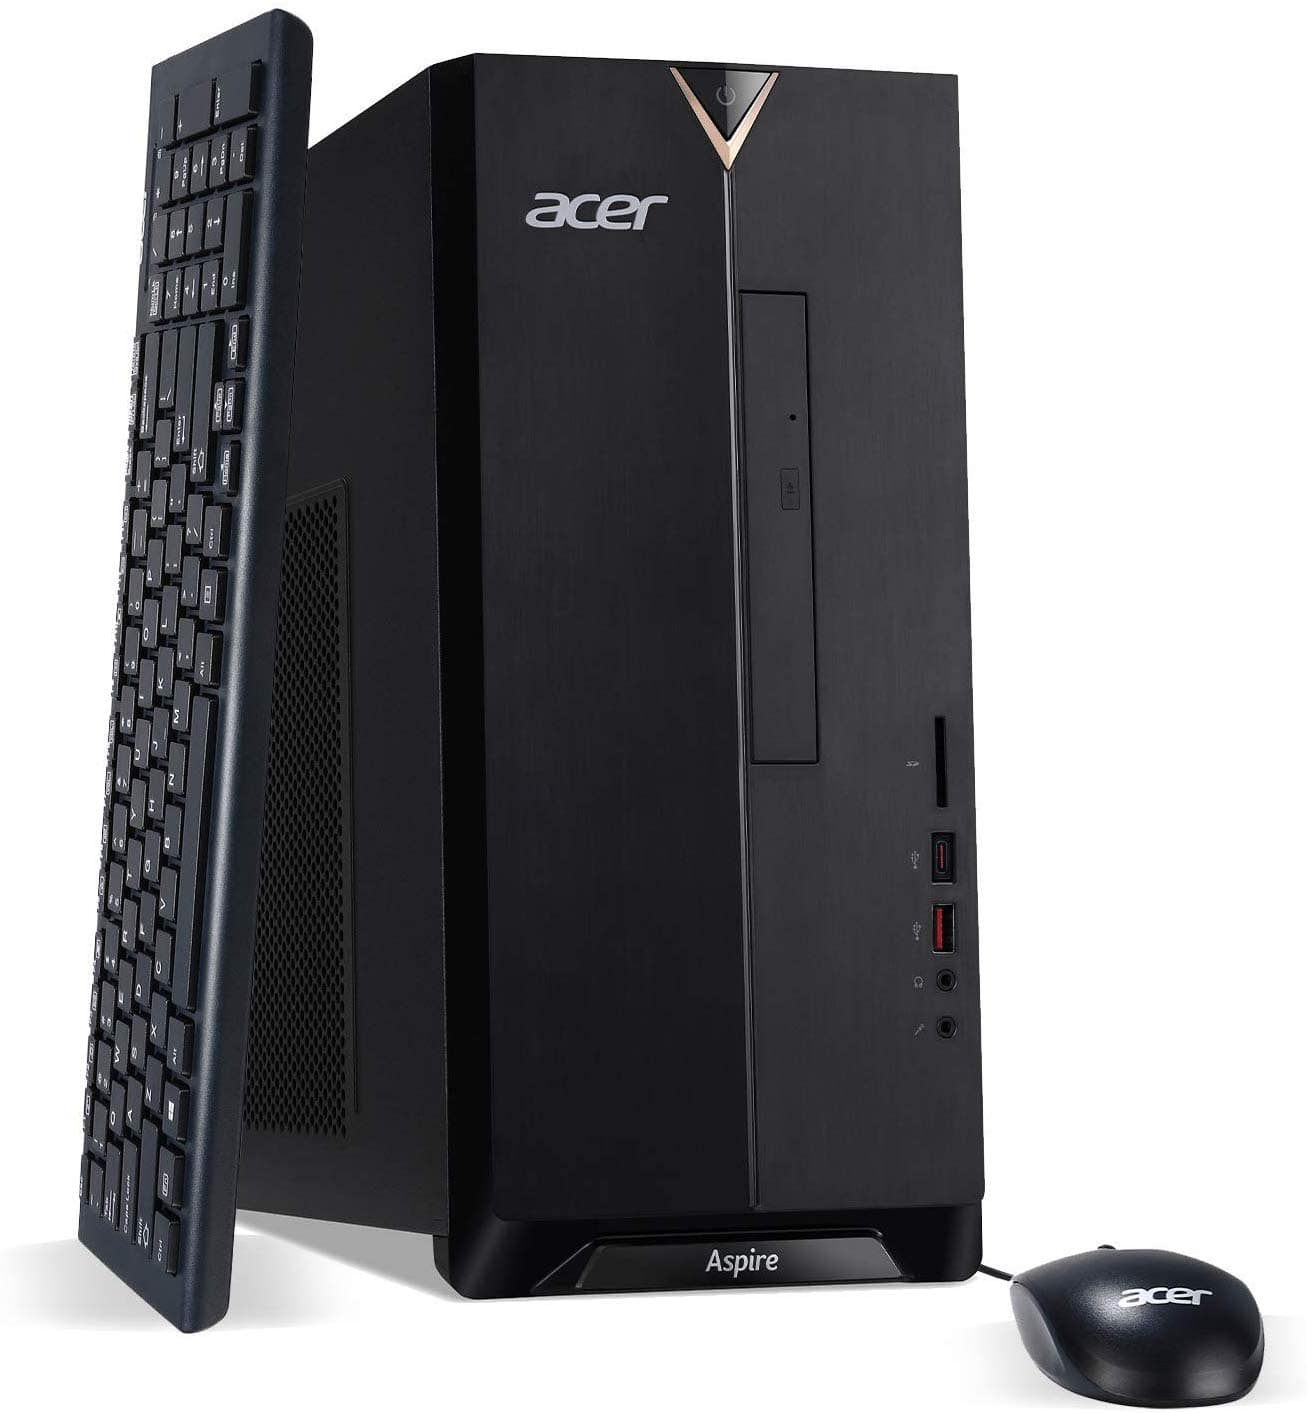 Acer Aspire TC-885-UA92 9th Gen Intel Core i5-9400, 12GB DDR4, 512GB SSD, 8X DVD, 802.11ac WiFi, Bluetooth 5.0, USB 3.1 Type C,  $499 shipped @ Amazon